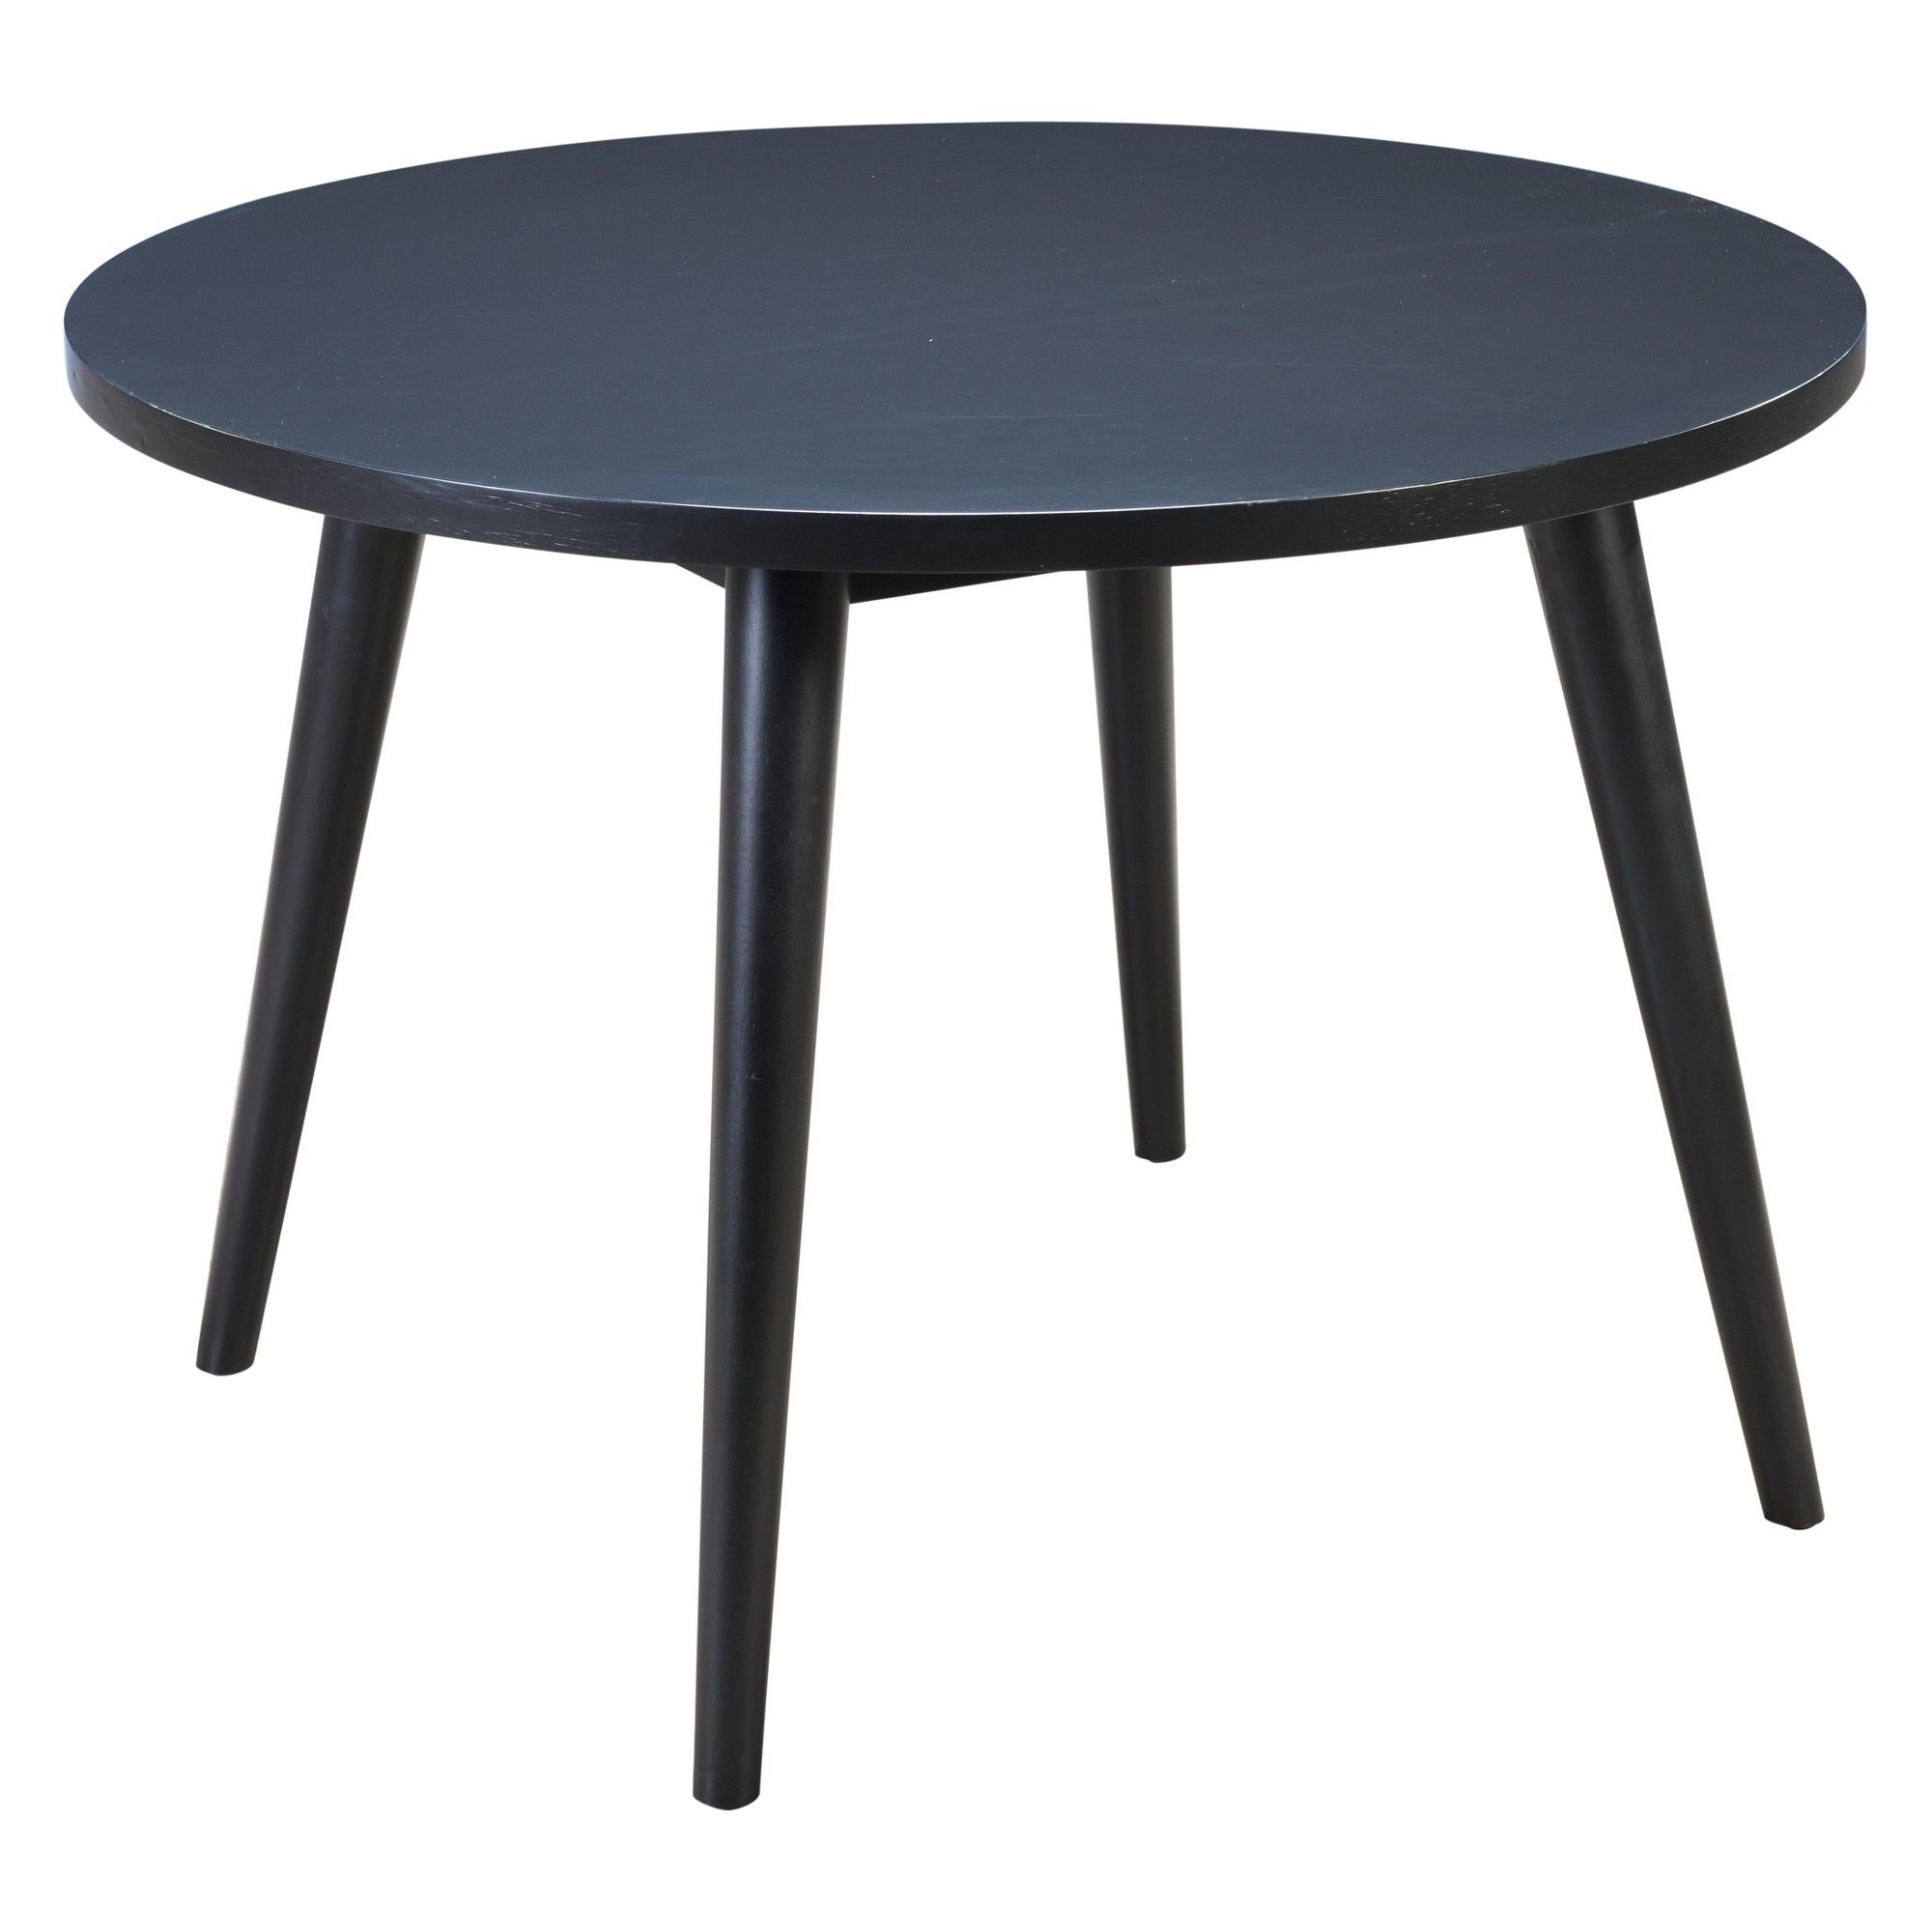 42 Modern Round Dining Table Dark Gray Zm Home In 2019